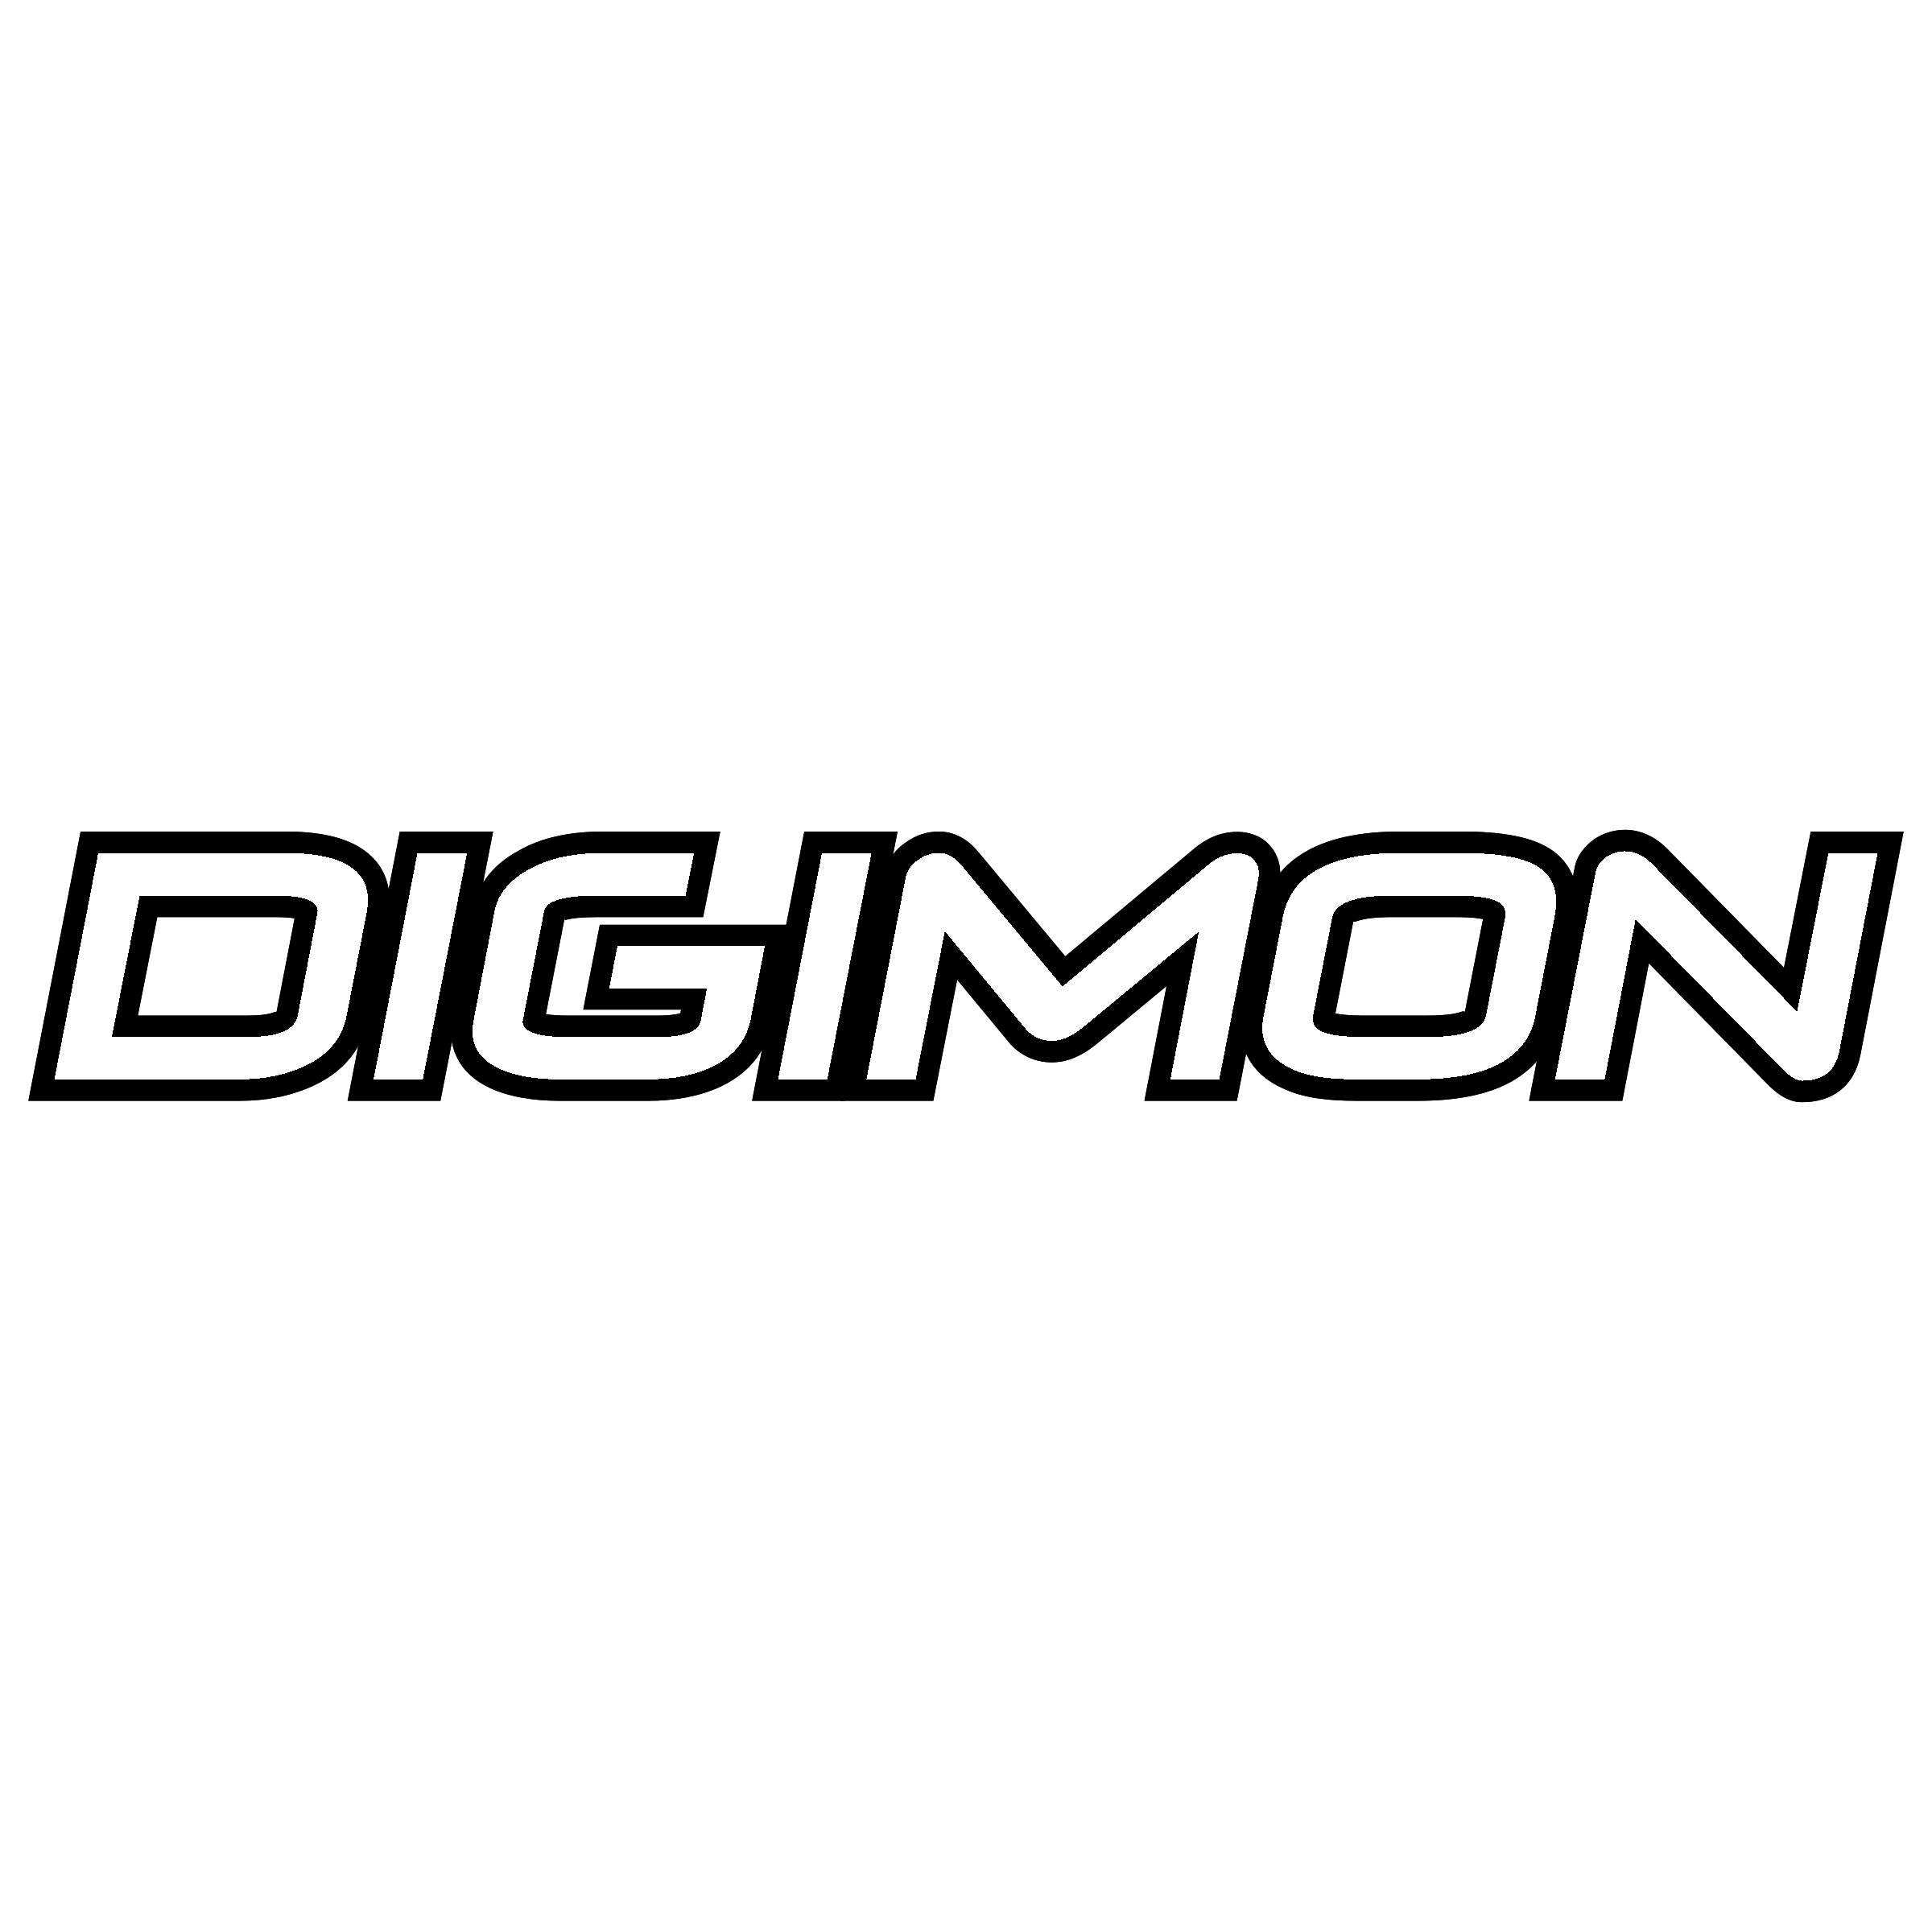 Digimon Logo - Digimon Logo PNG Transparent & SVG Vector - Freebie Supply